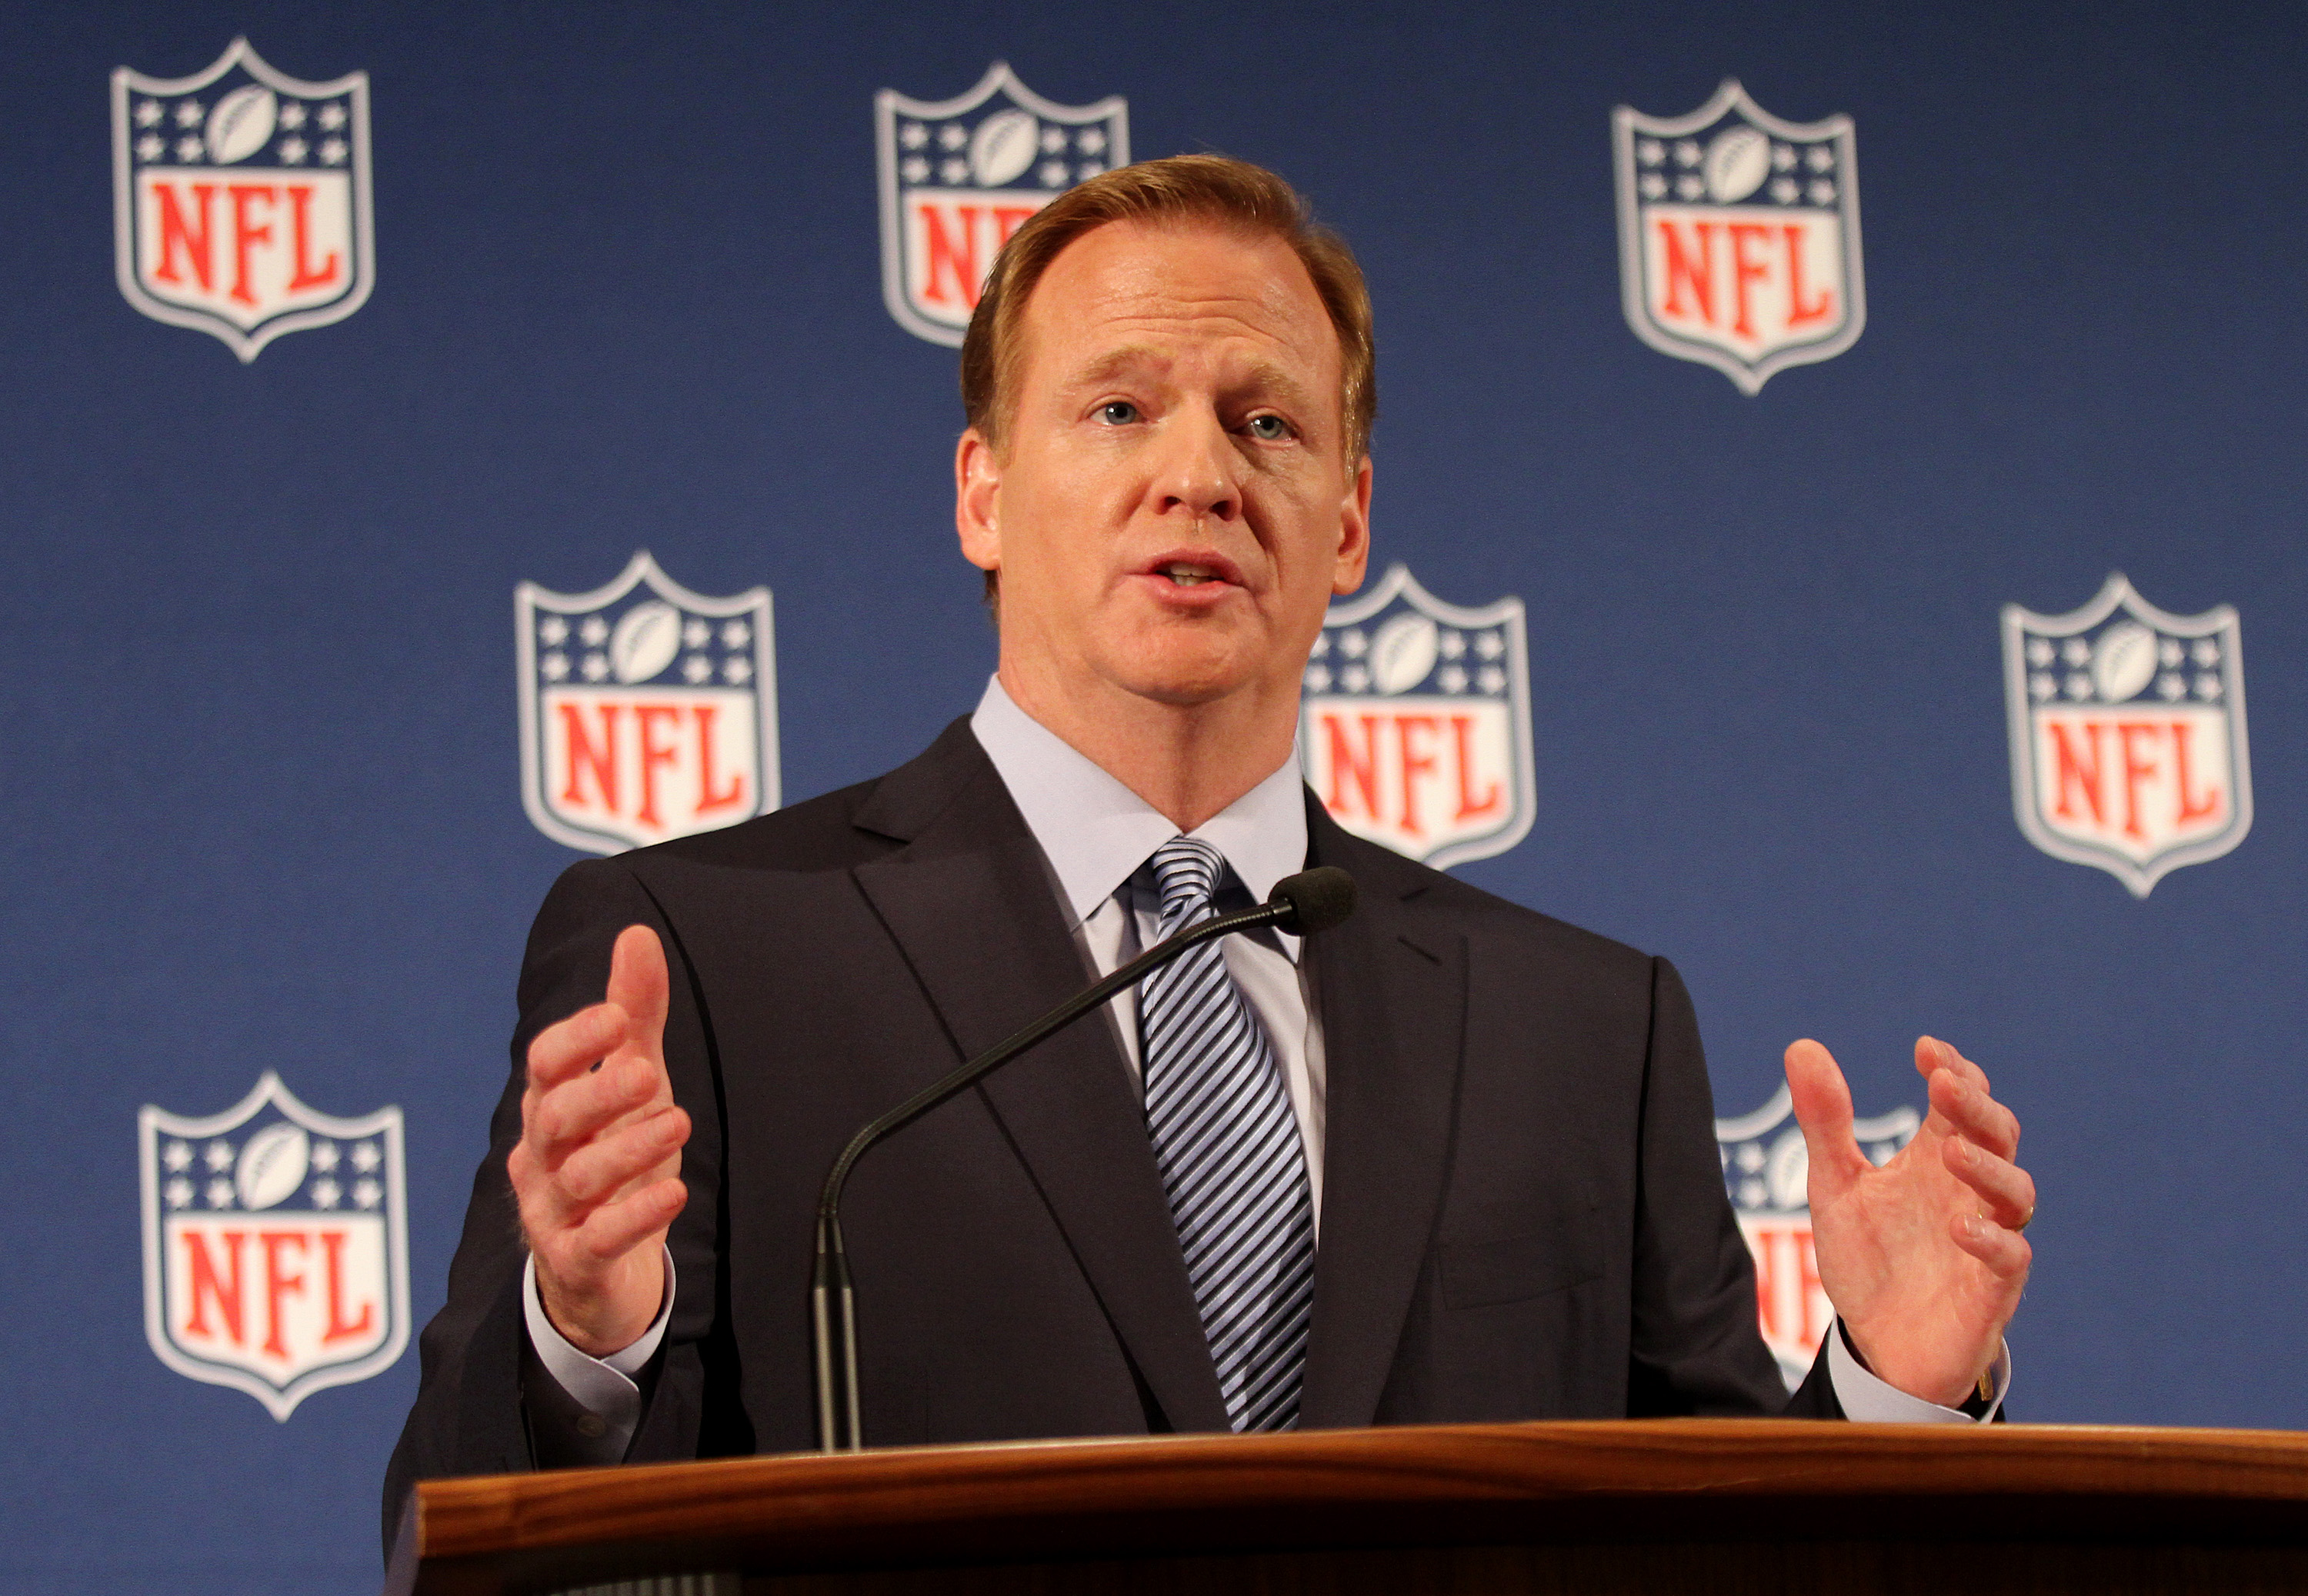 NFL Commissioner Roger Goodell holds a press conference to discuss the Ray Rice incident